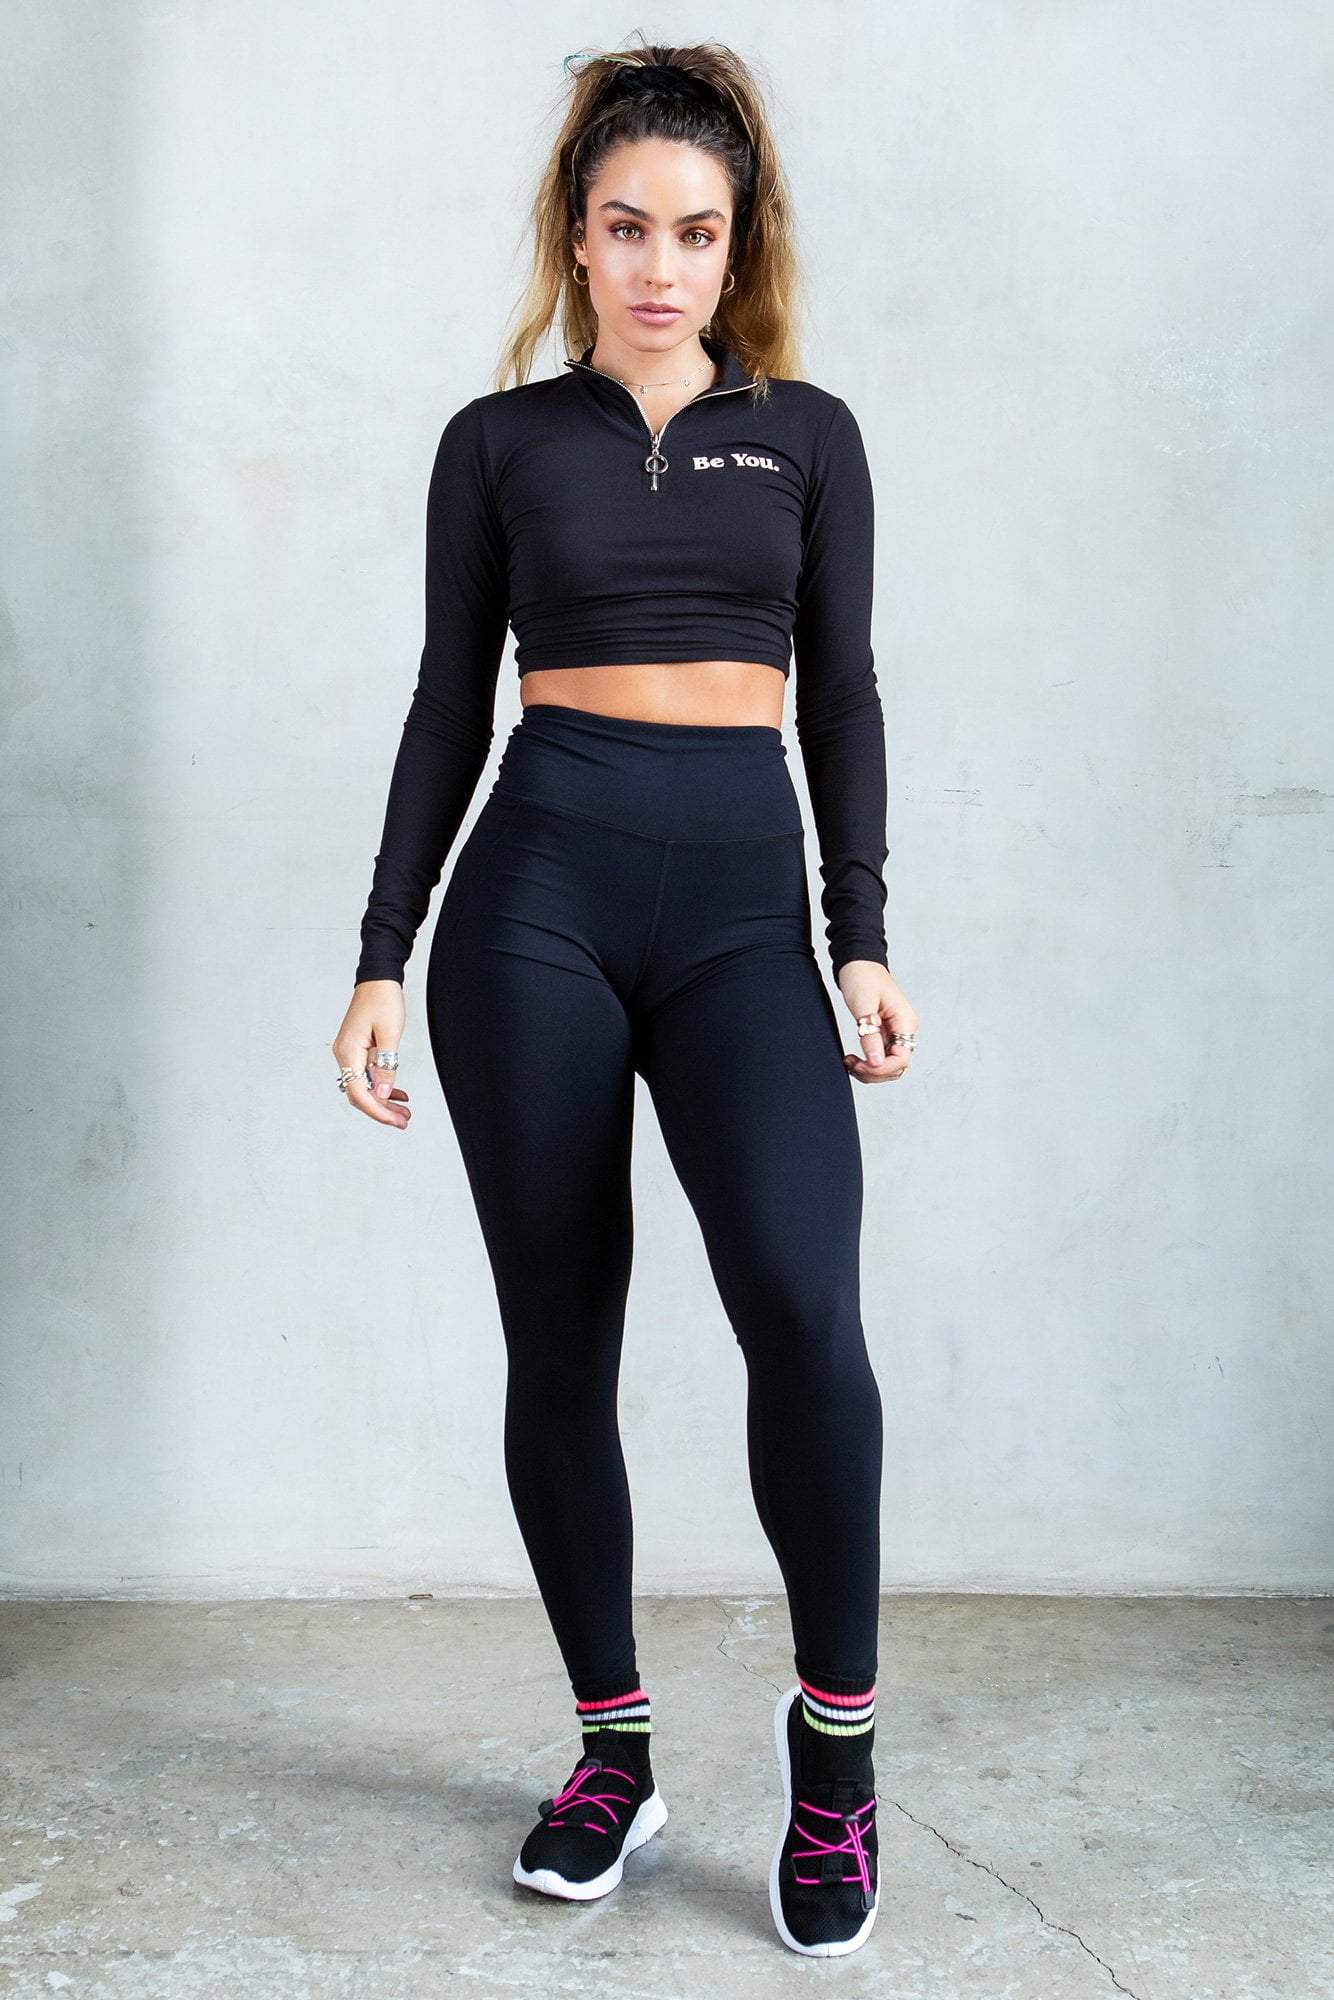 Back-Pocket Active Butt Lift Leggings - Black